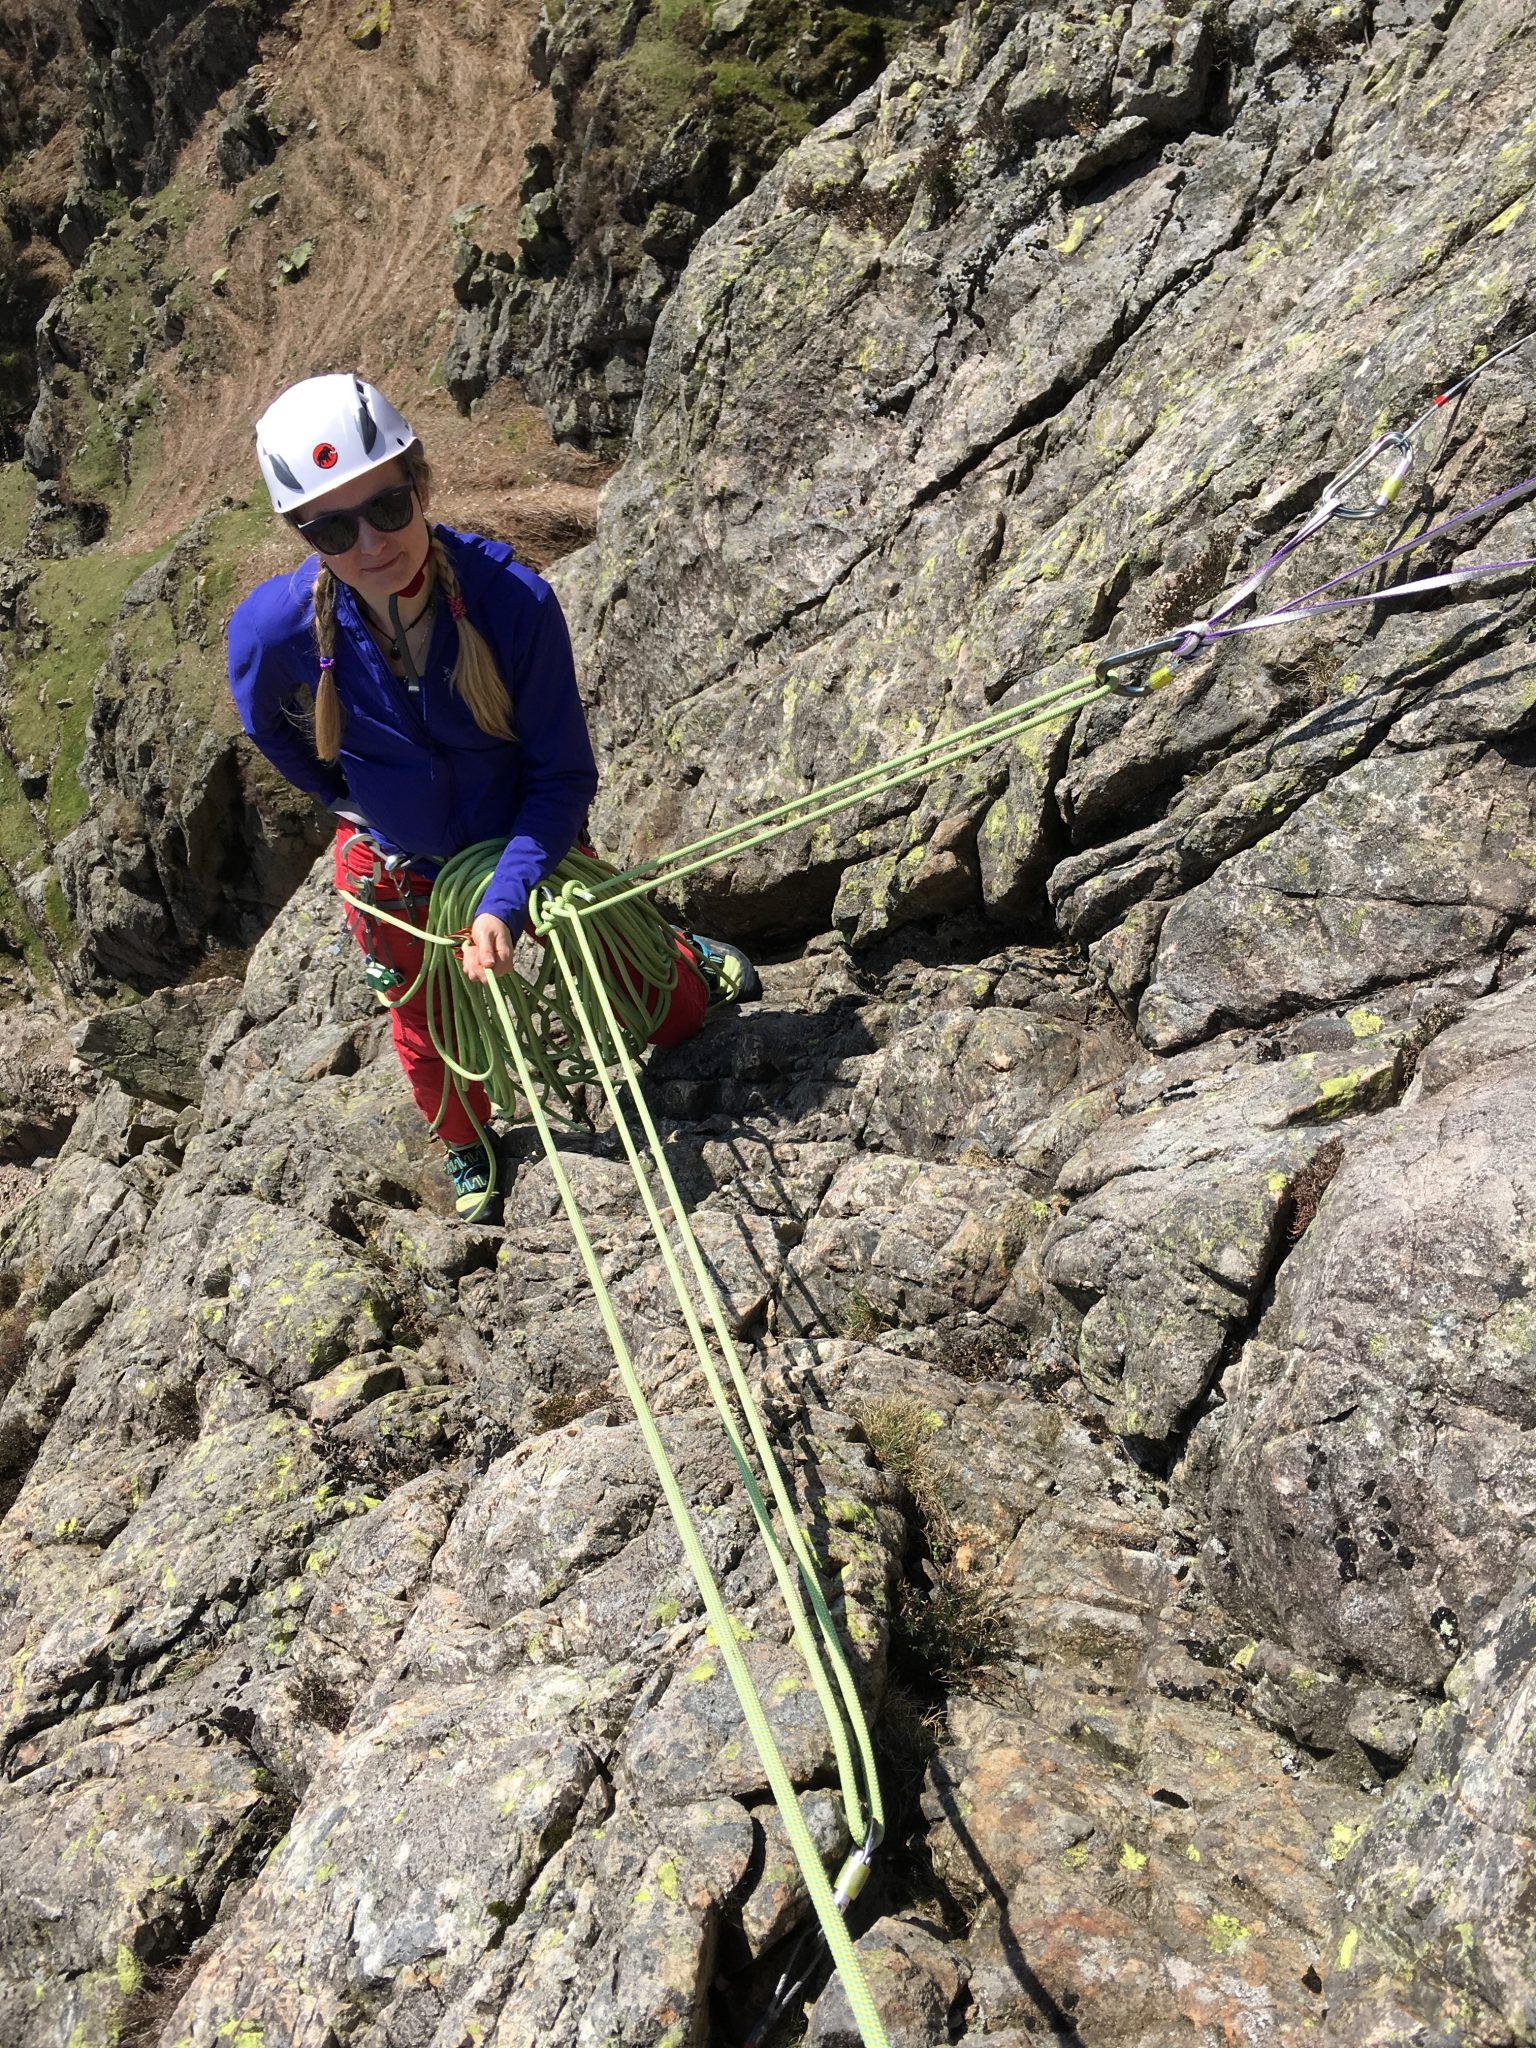 A rock climber securely anchored to the rock at her belay on a multi-pitch rock climbing course in the Lake District